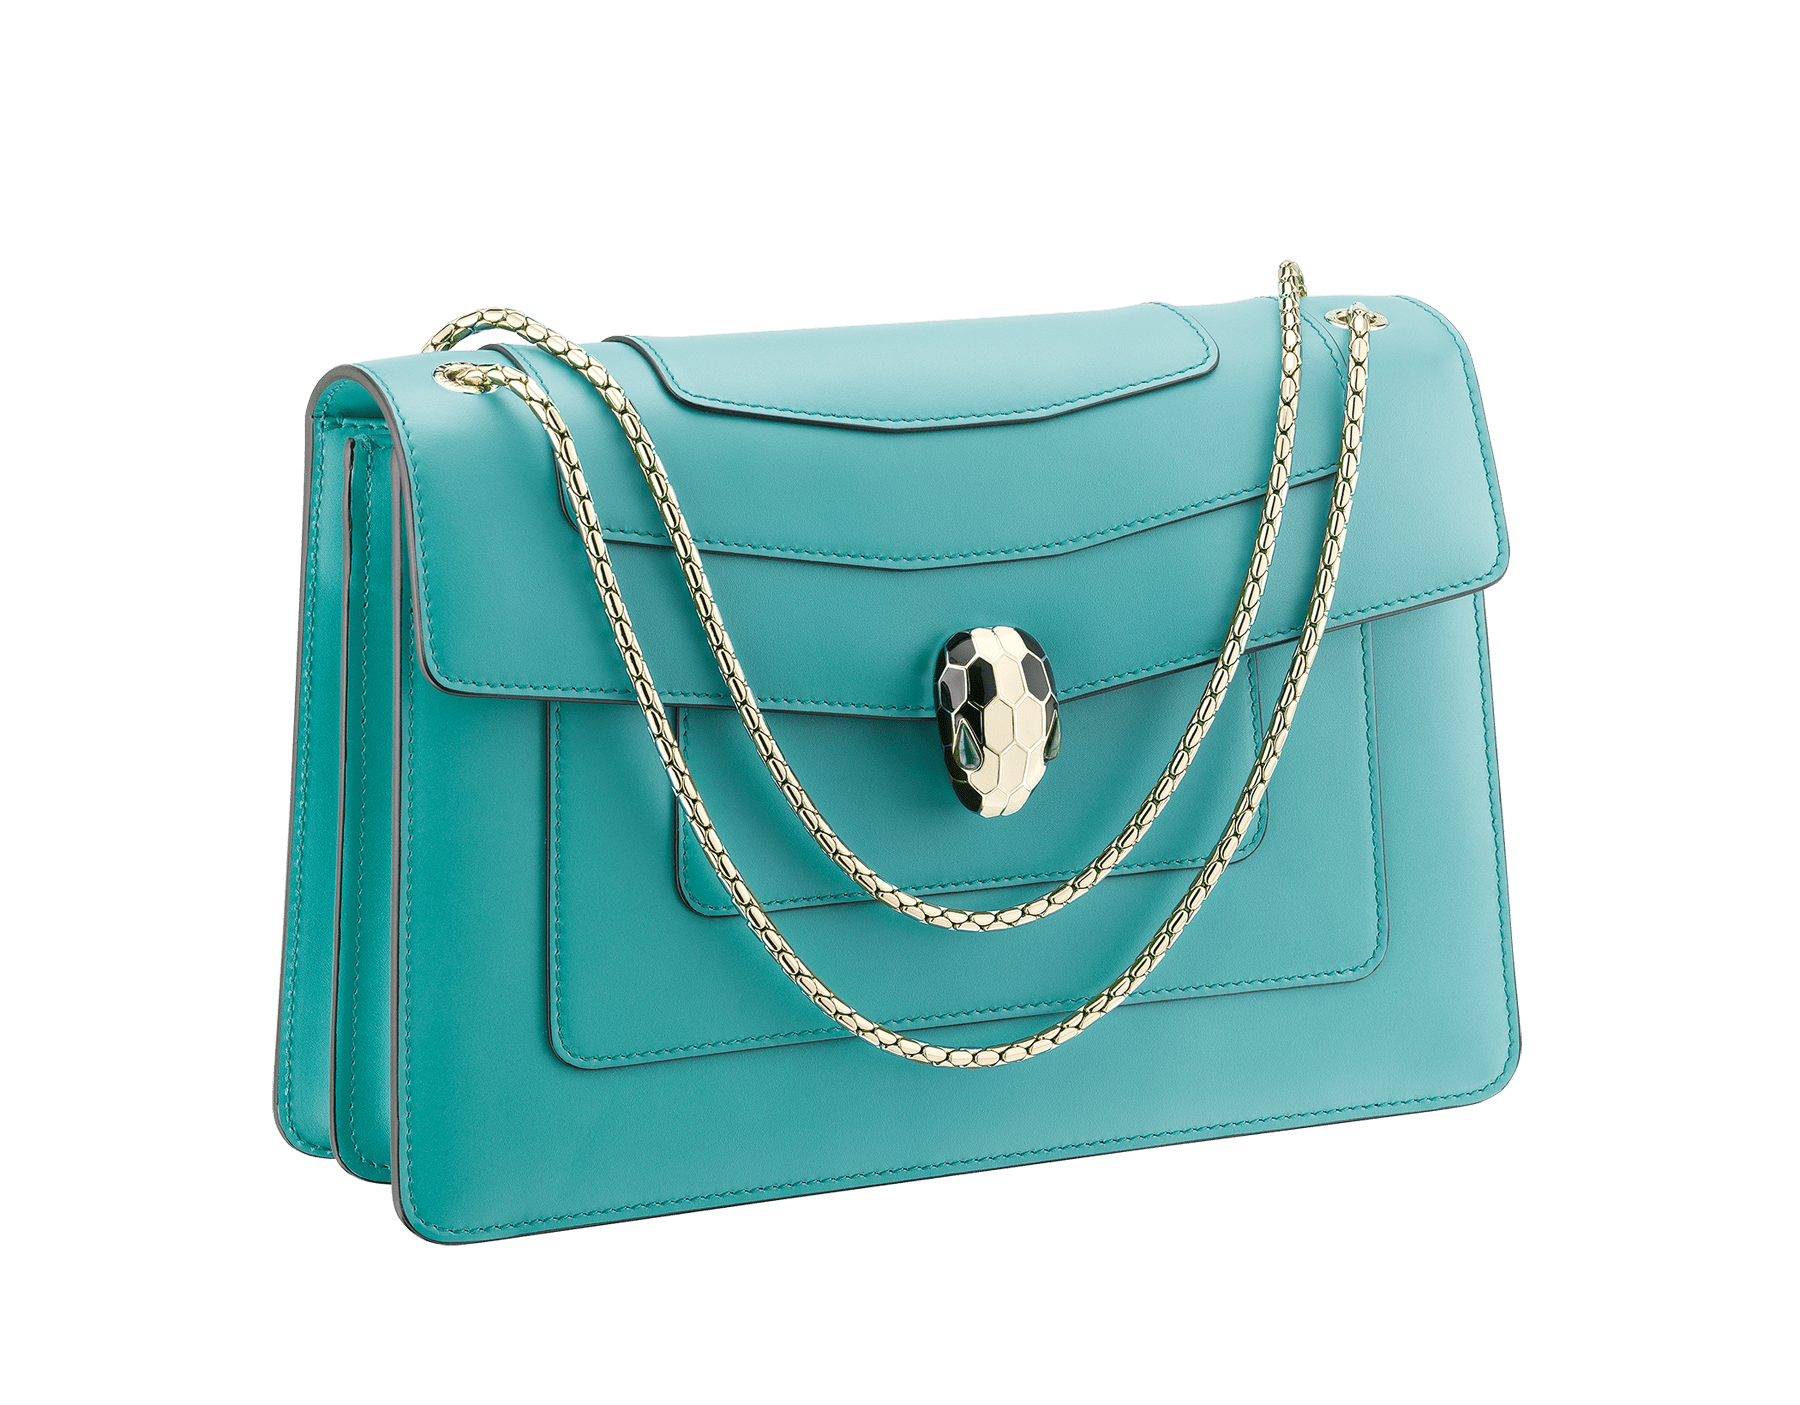 Serpenti Forever shoulder bag in arctic jade calf leather. Iconic snakehead closure in light gold plated brass embellished with black and white enamel and green malachite eyes. 288701 image 2